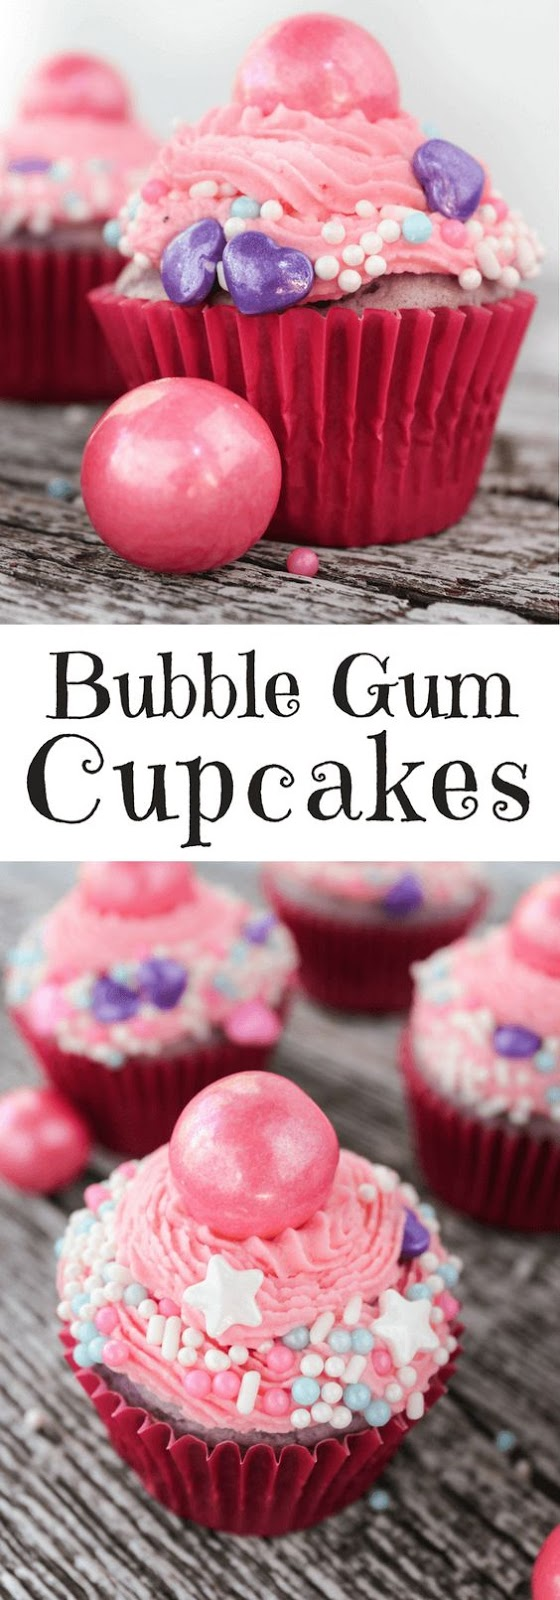 Bubblegum Cupcakes Cake Mix